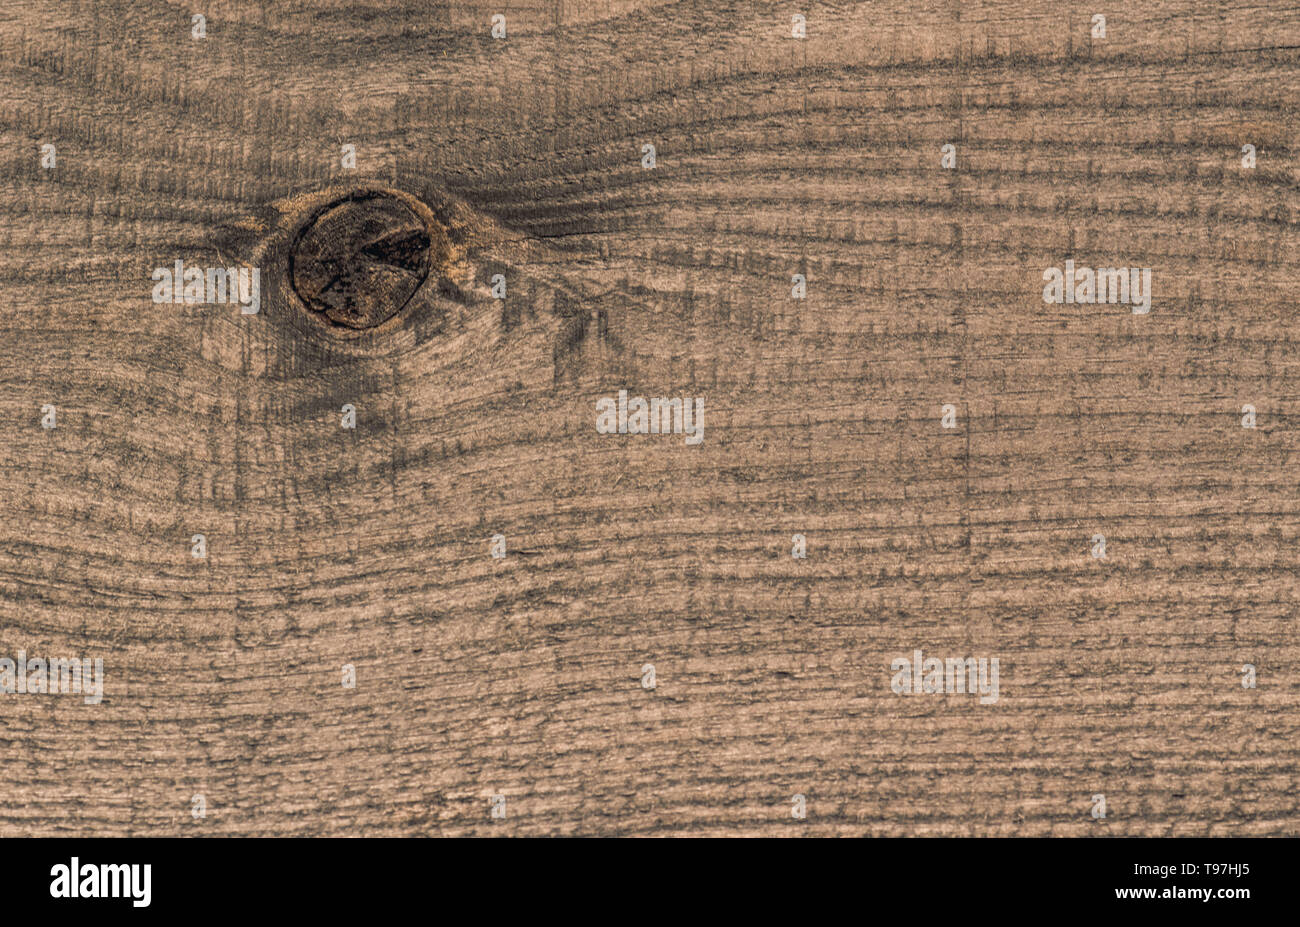 background texture of old wooden plank with the remnants of the branch - Stock Image